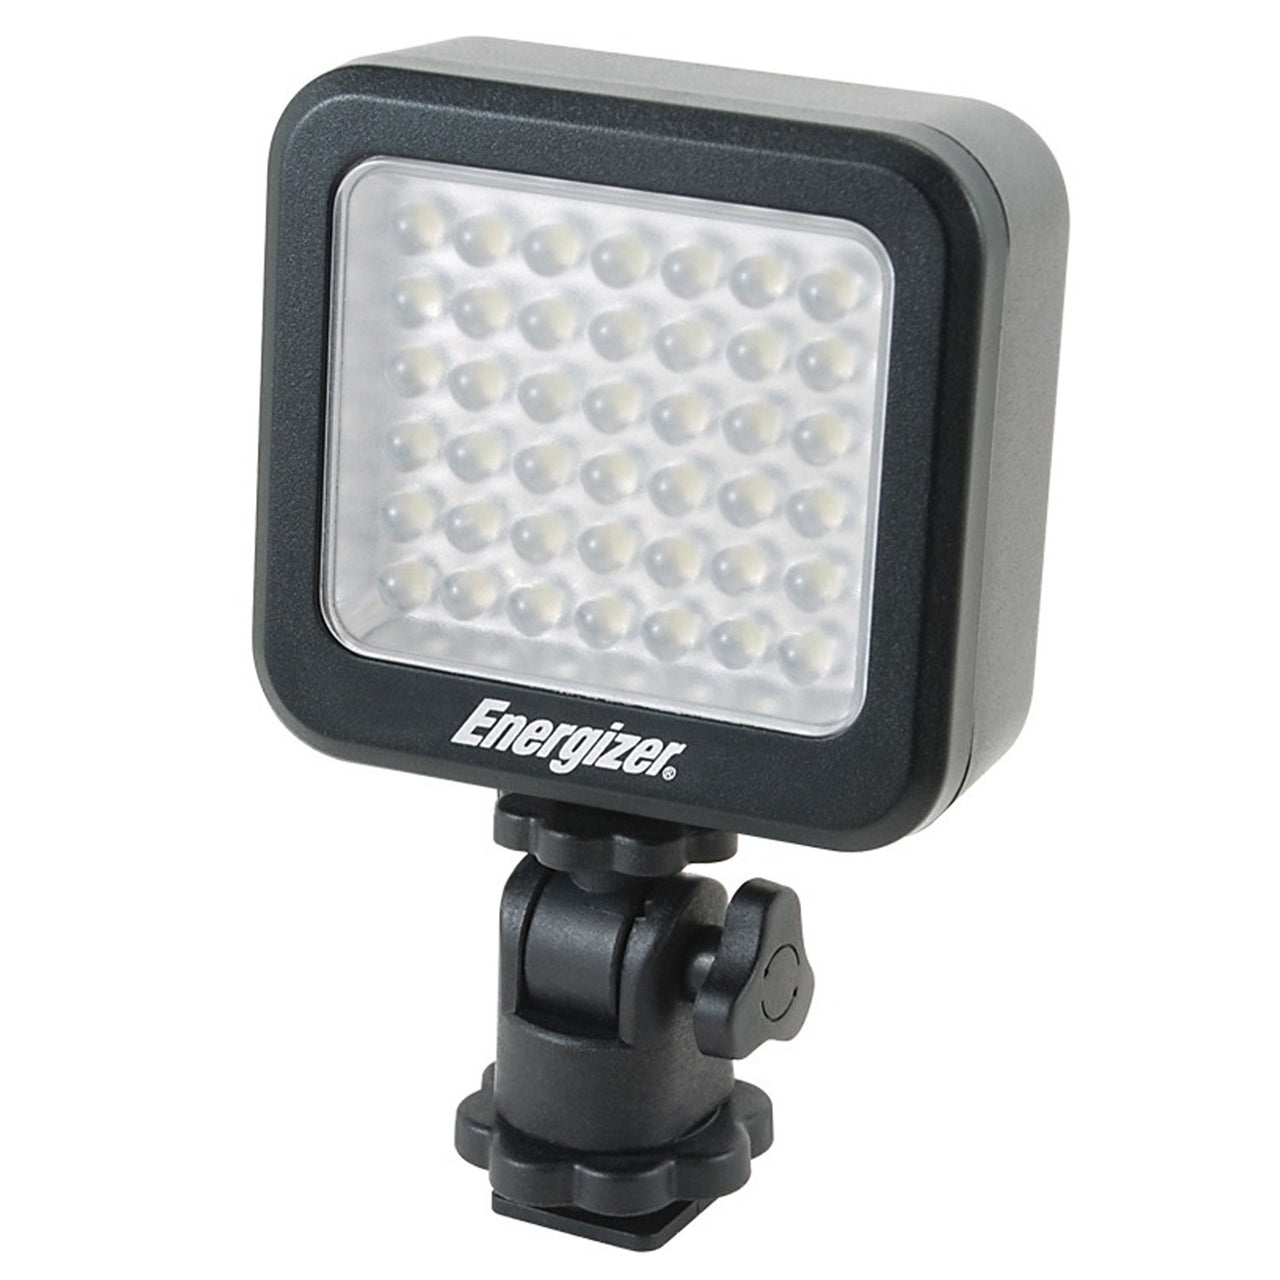 Energizer® 42-Bulb LED Video Light